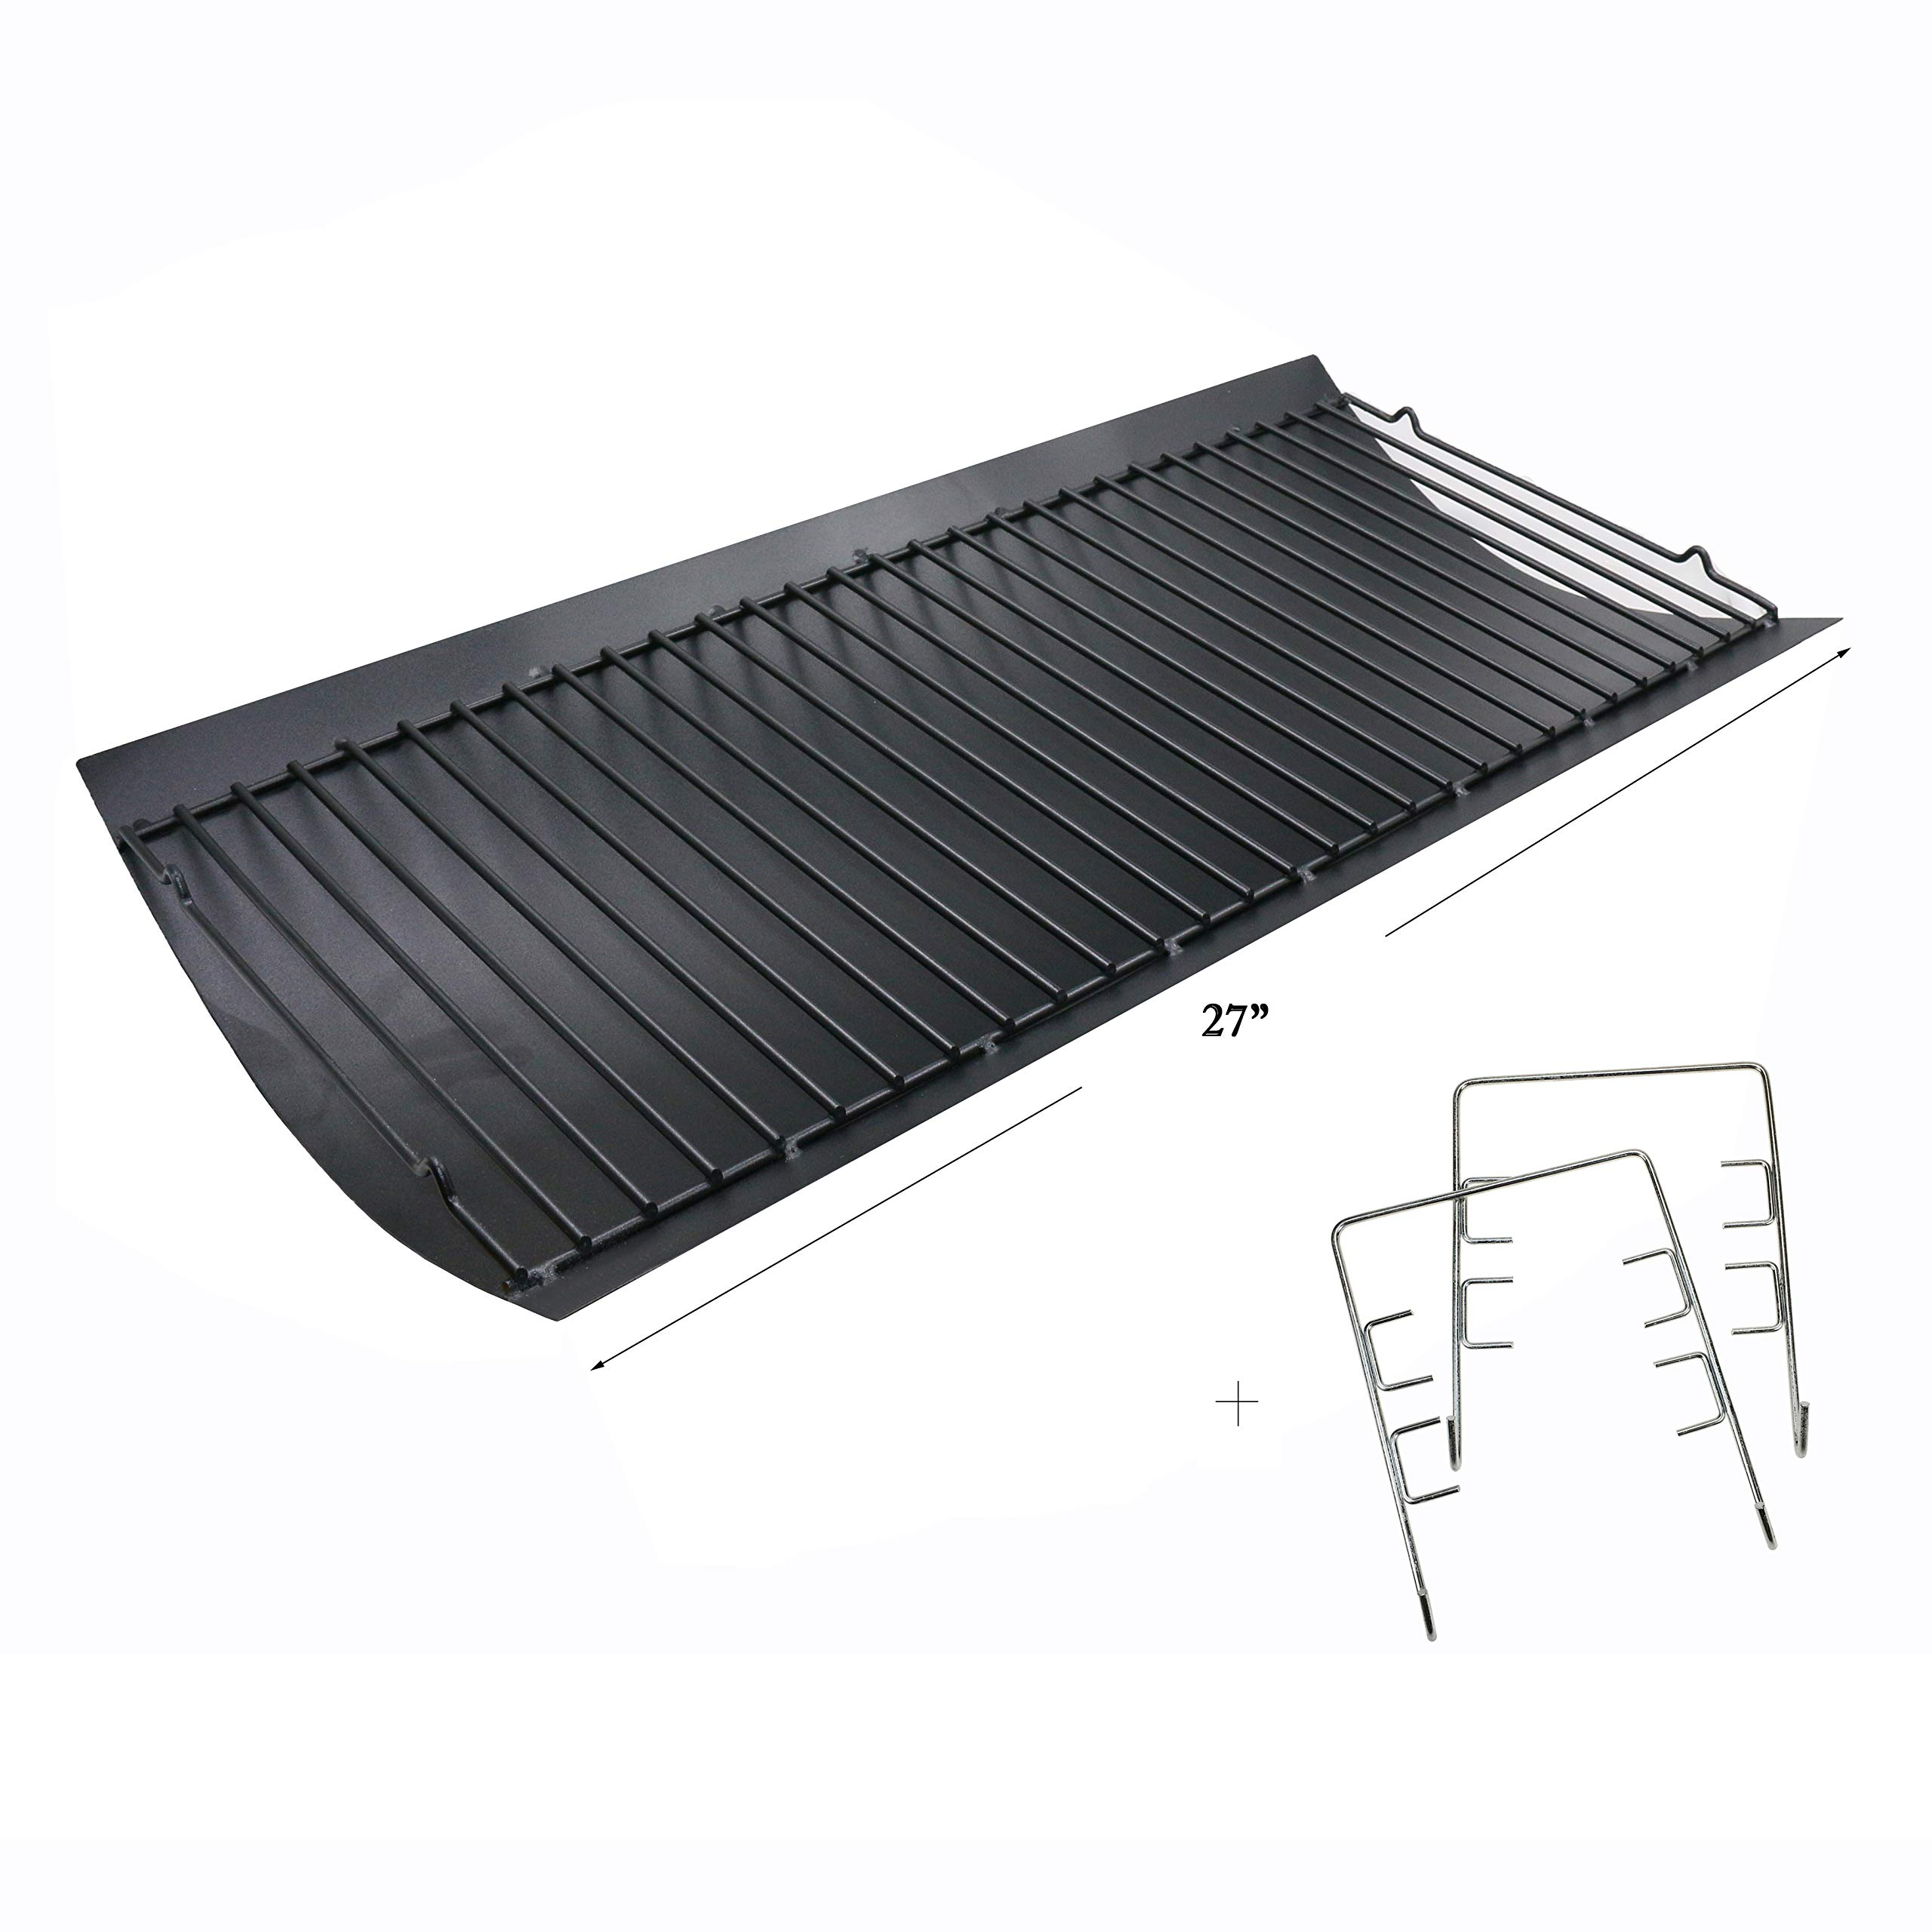 Hisencn 27 inch Ash Pan Repair Parts for Chargriller 1224, 1324, 2121, 2222, 2727, 2828, 2929 Charcoal Grills, Charbroil 17302056, 27'' Drip Pan Grates Replacement Part with 2pcs Fire Grate Hanger